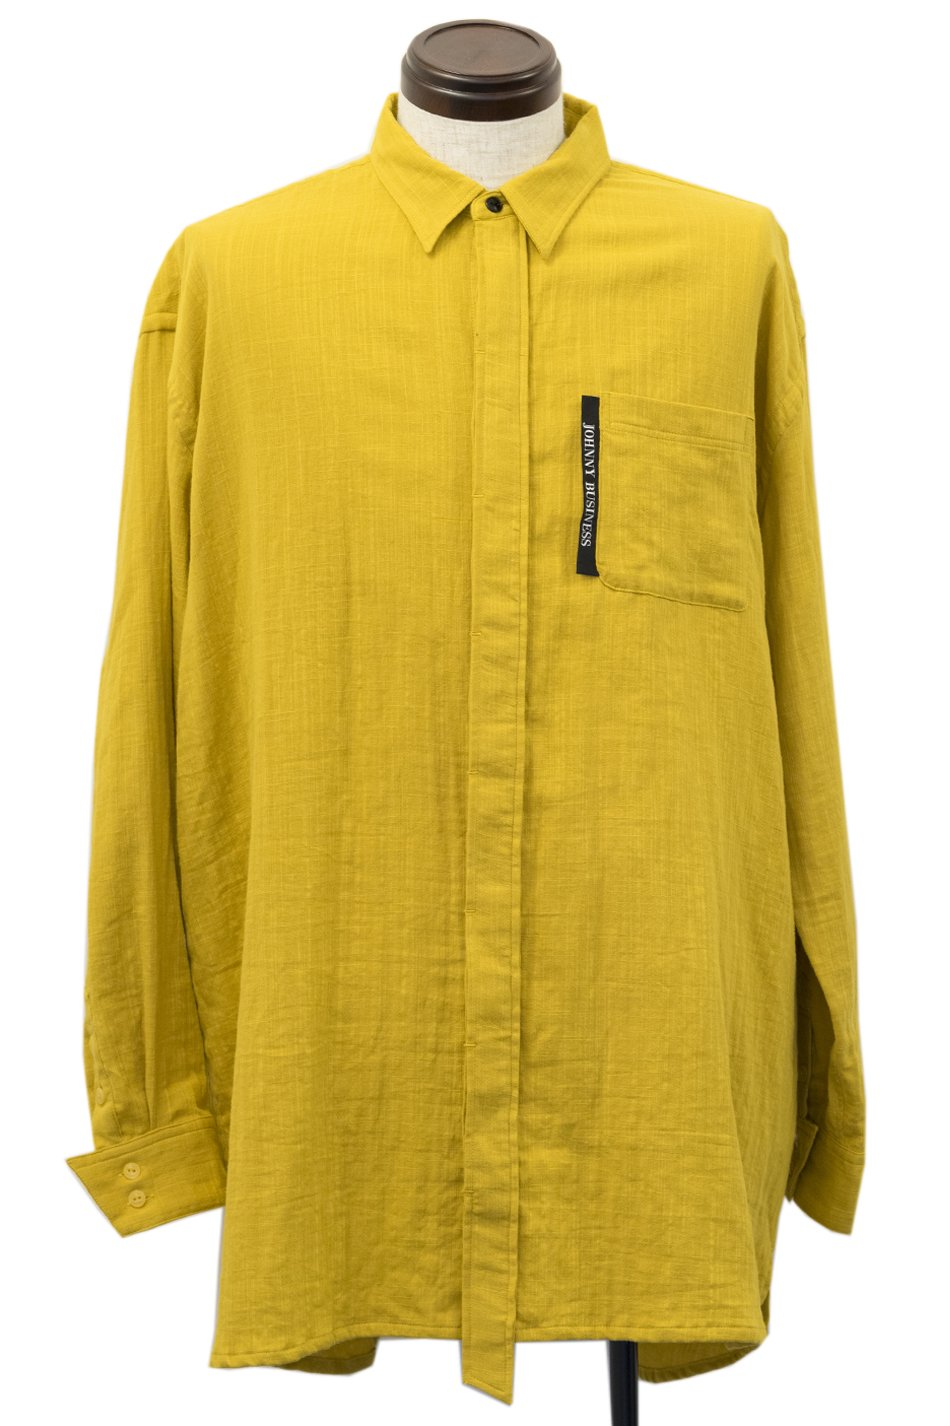 In The Tokyo Shirts/Yellow